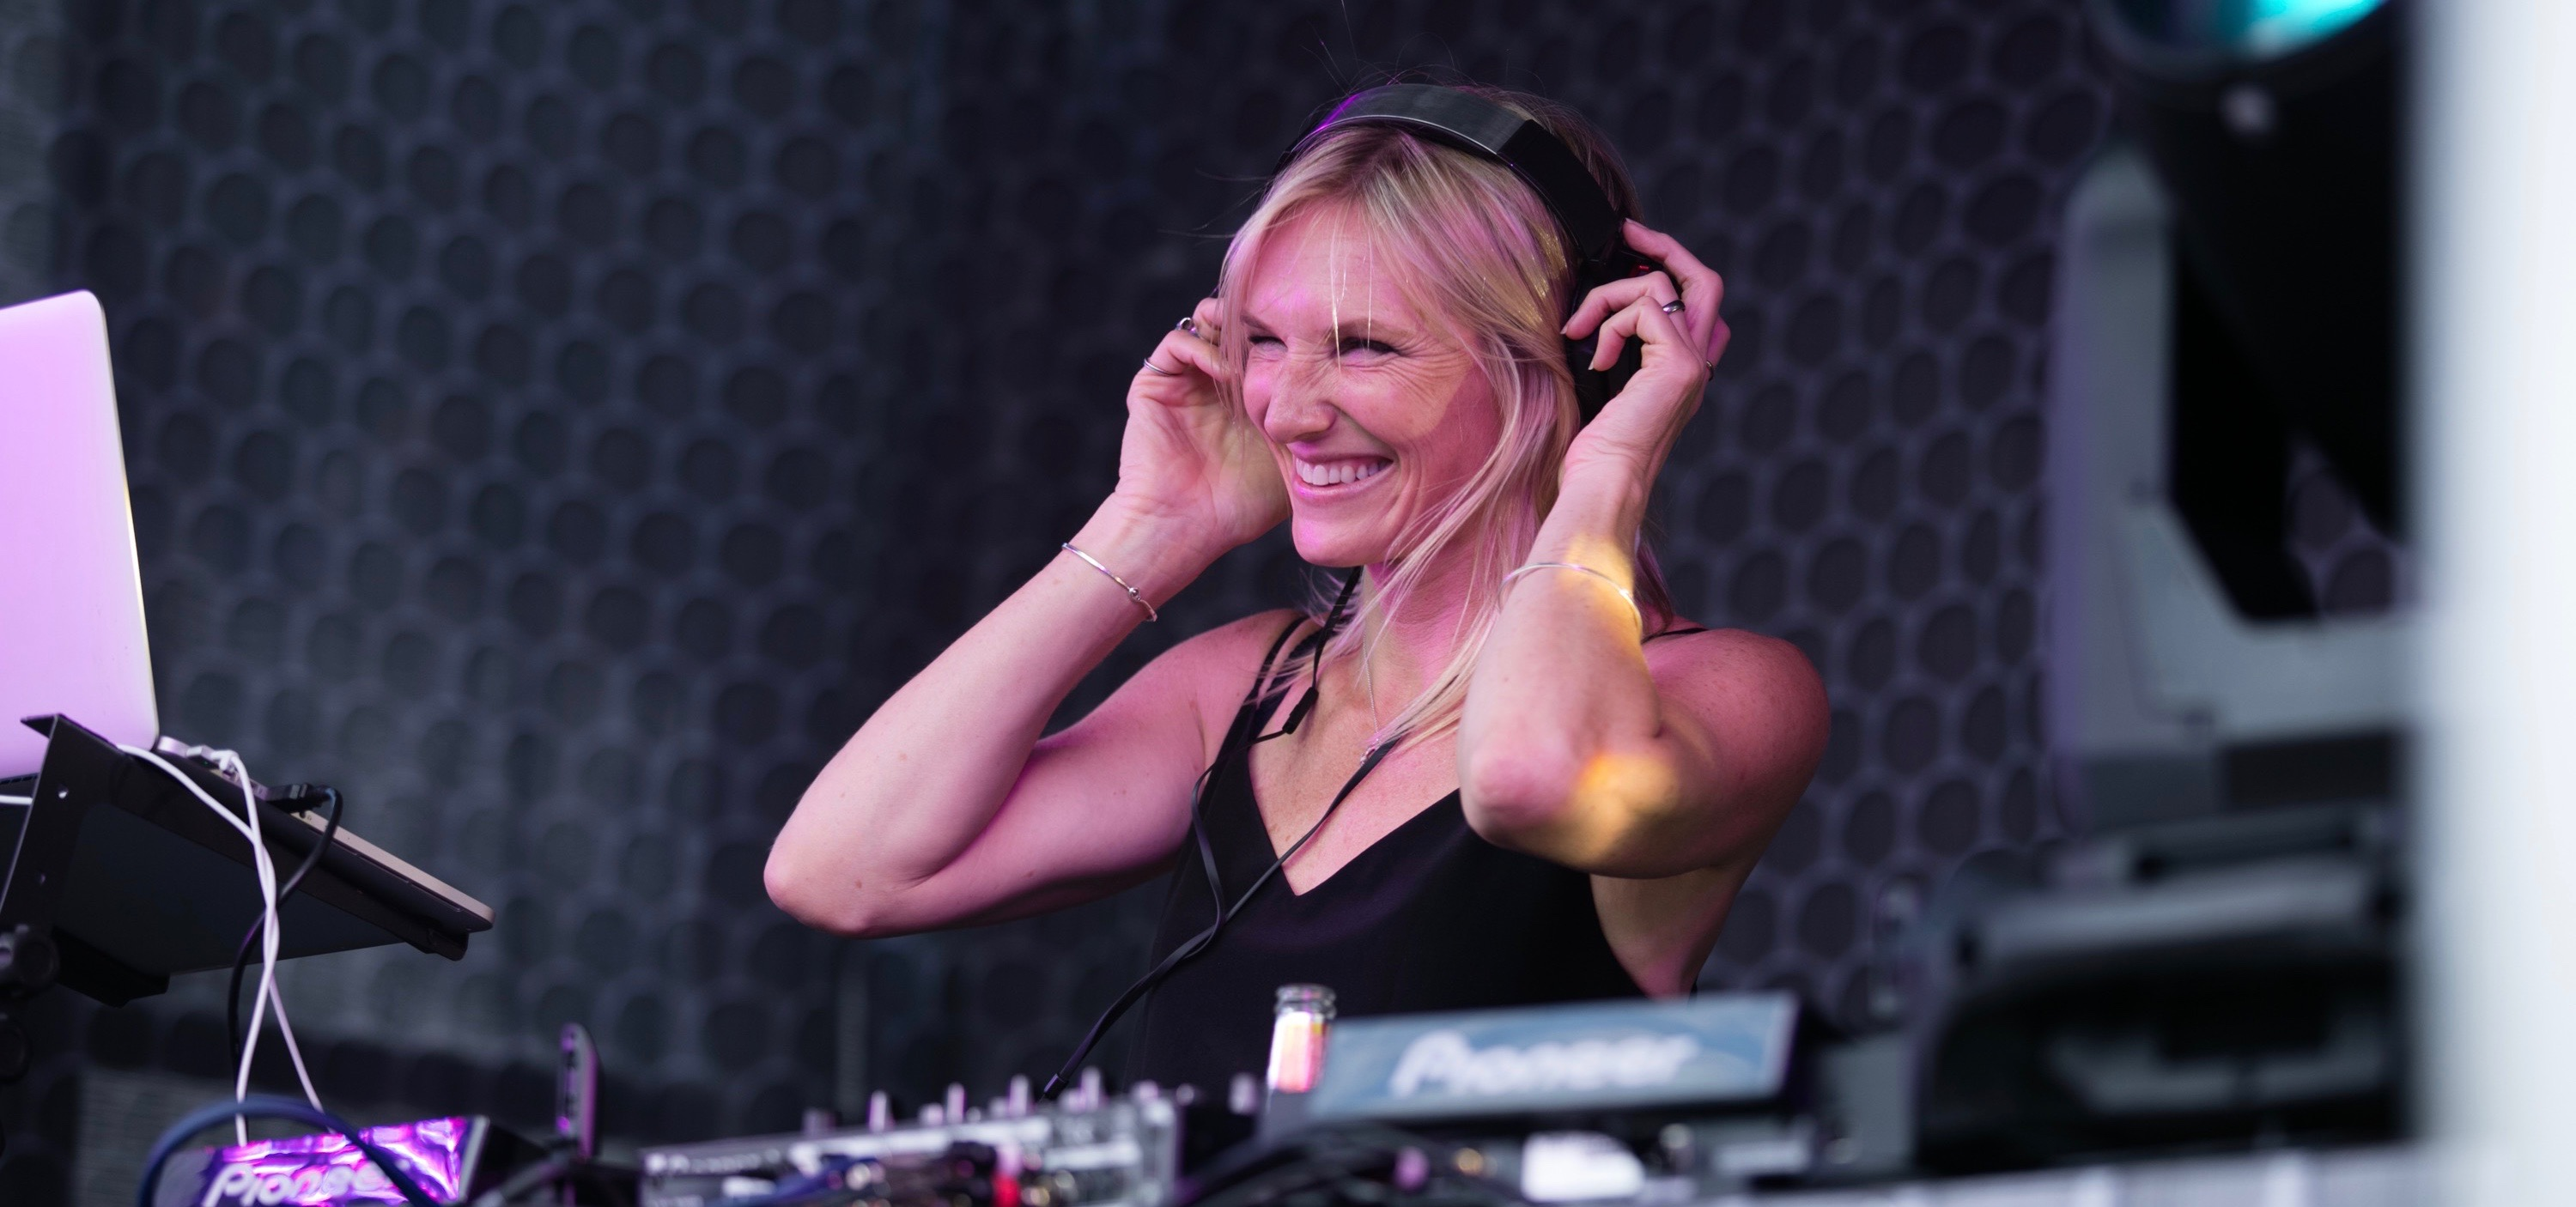 Union Artists Music Management - Artist - Jo Whiley